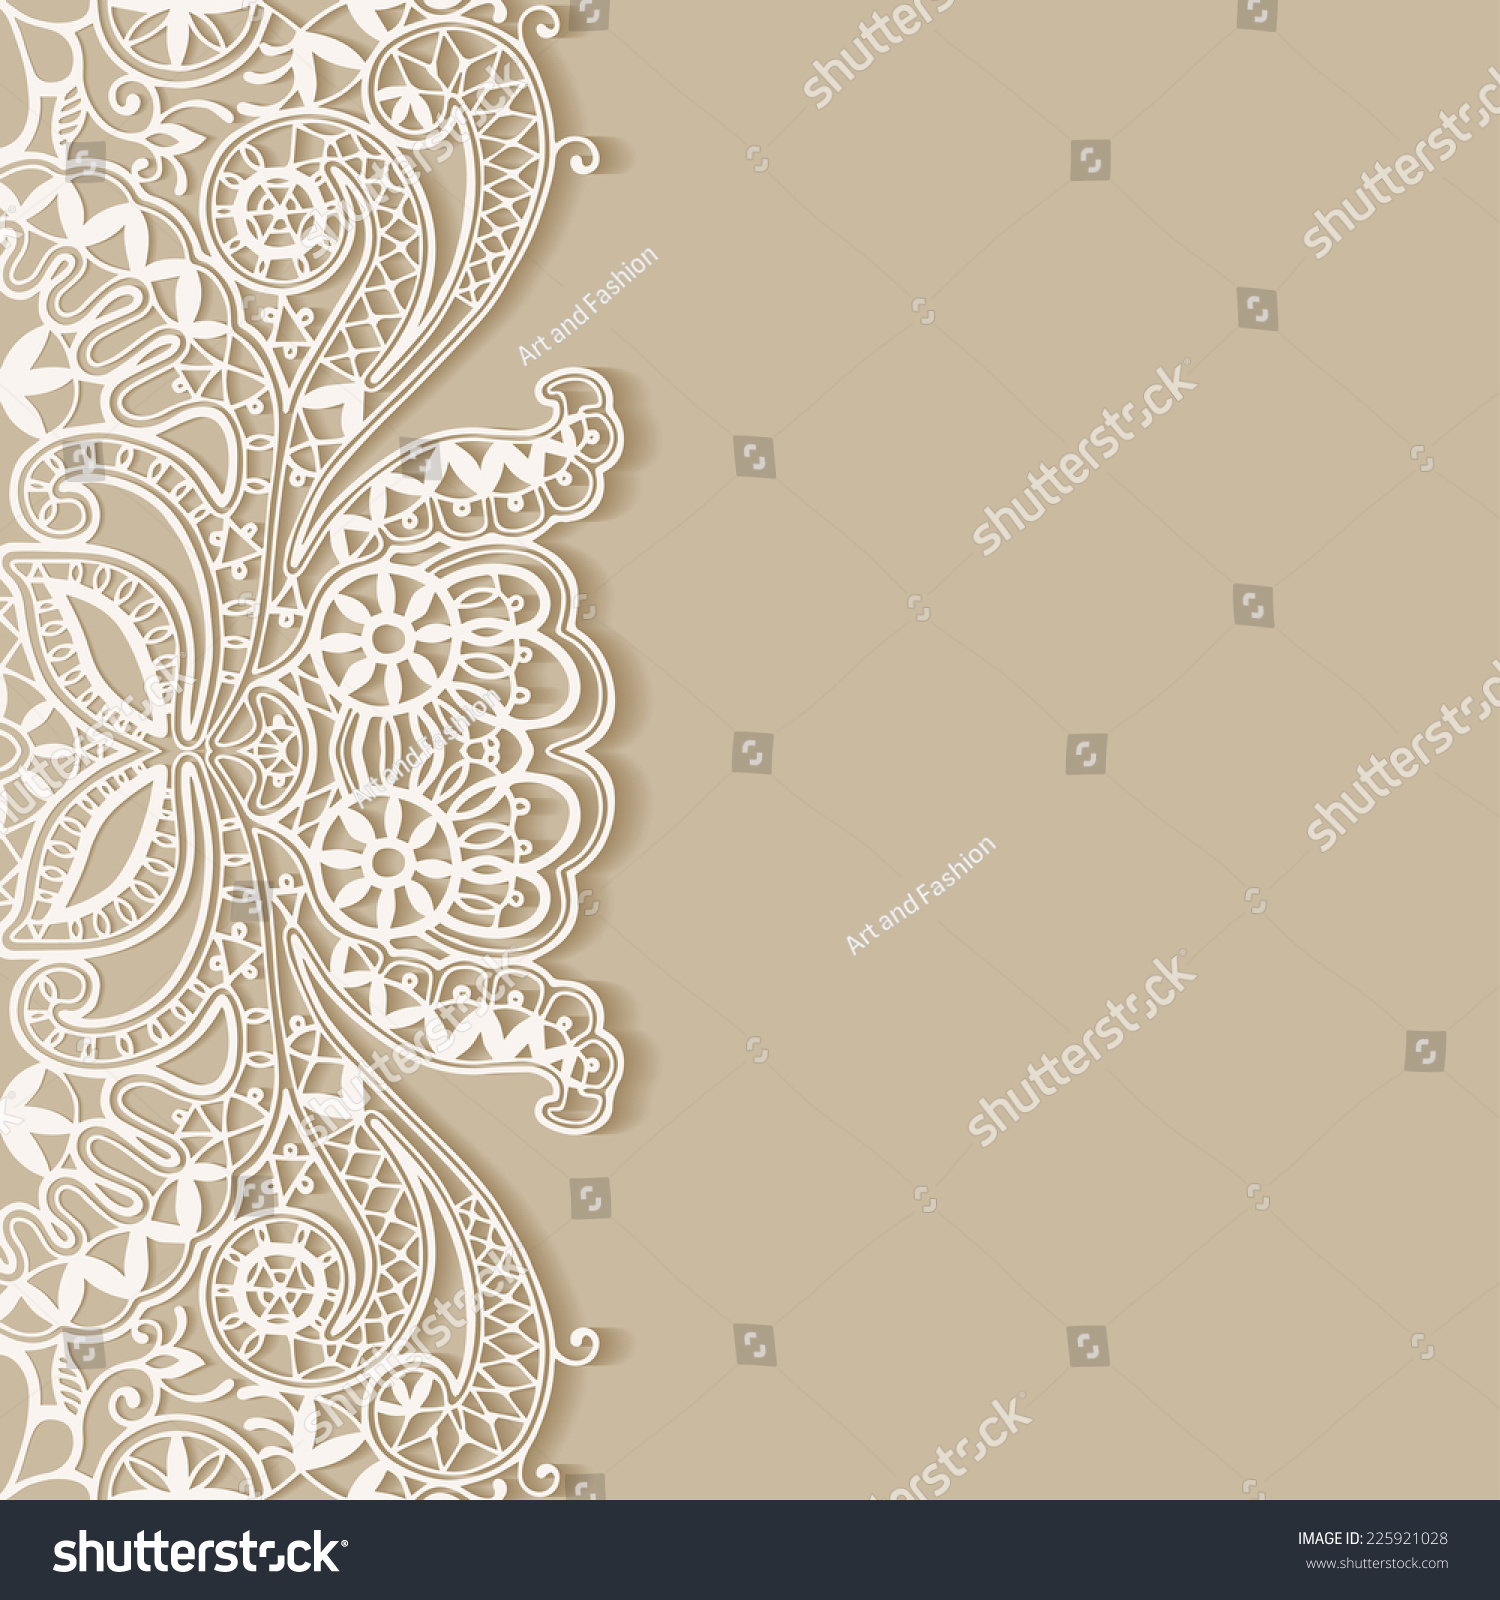 abstract background wedding invitation or greeting card design with lace pattern beautiful luxury postcard - Wedding Invitation Background